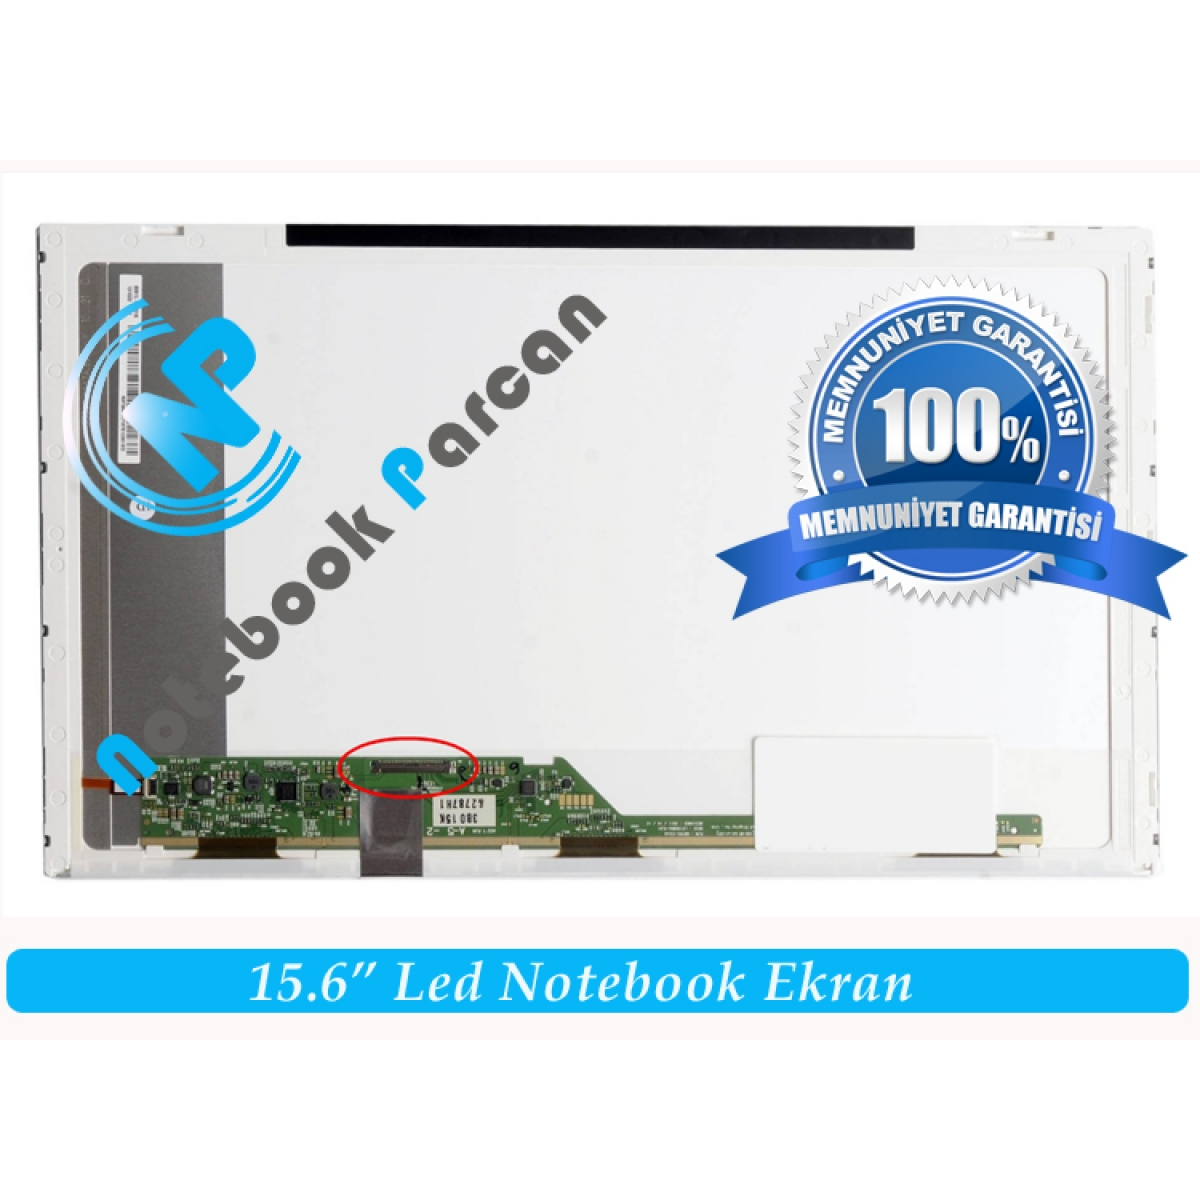 Toshiba Satellite C655-S5047 Ekran 15.6 Led Pan